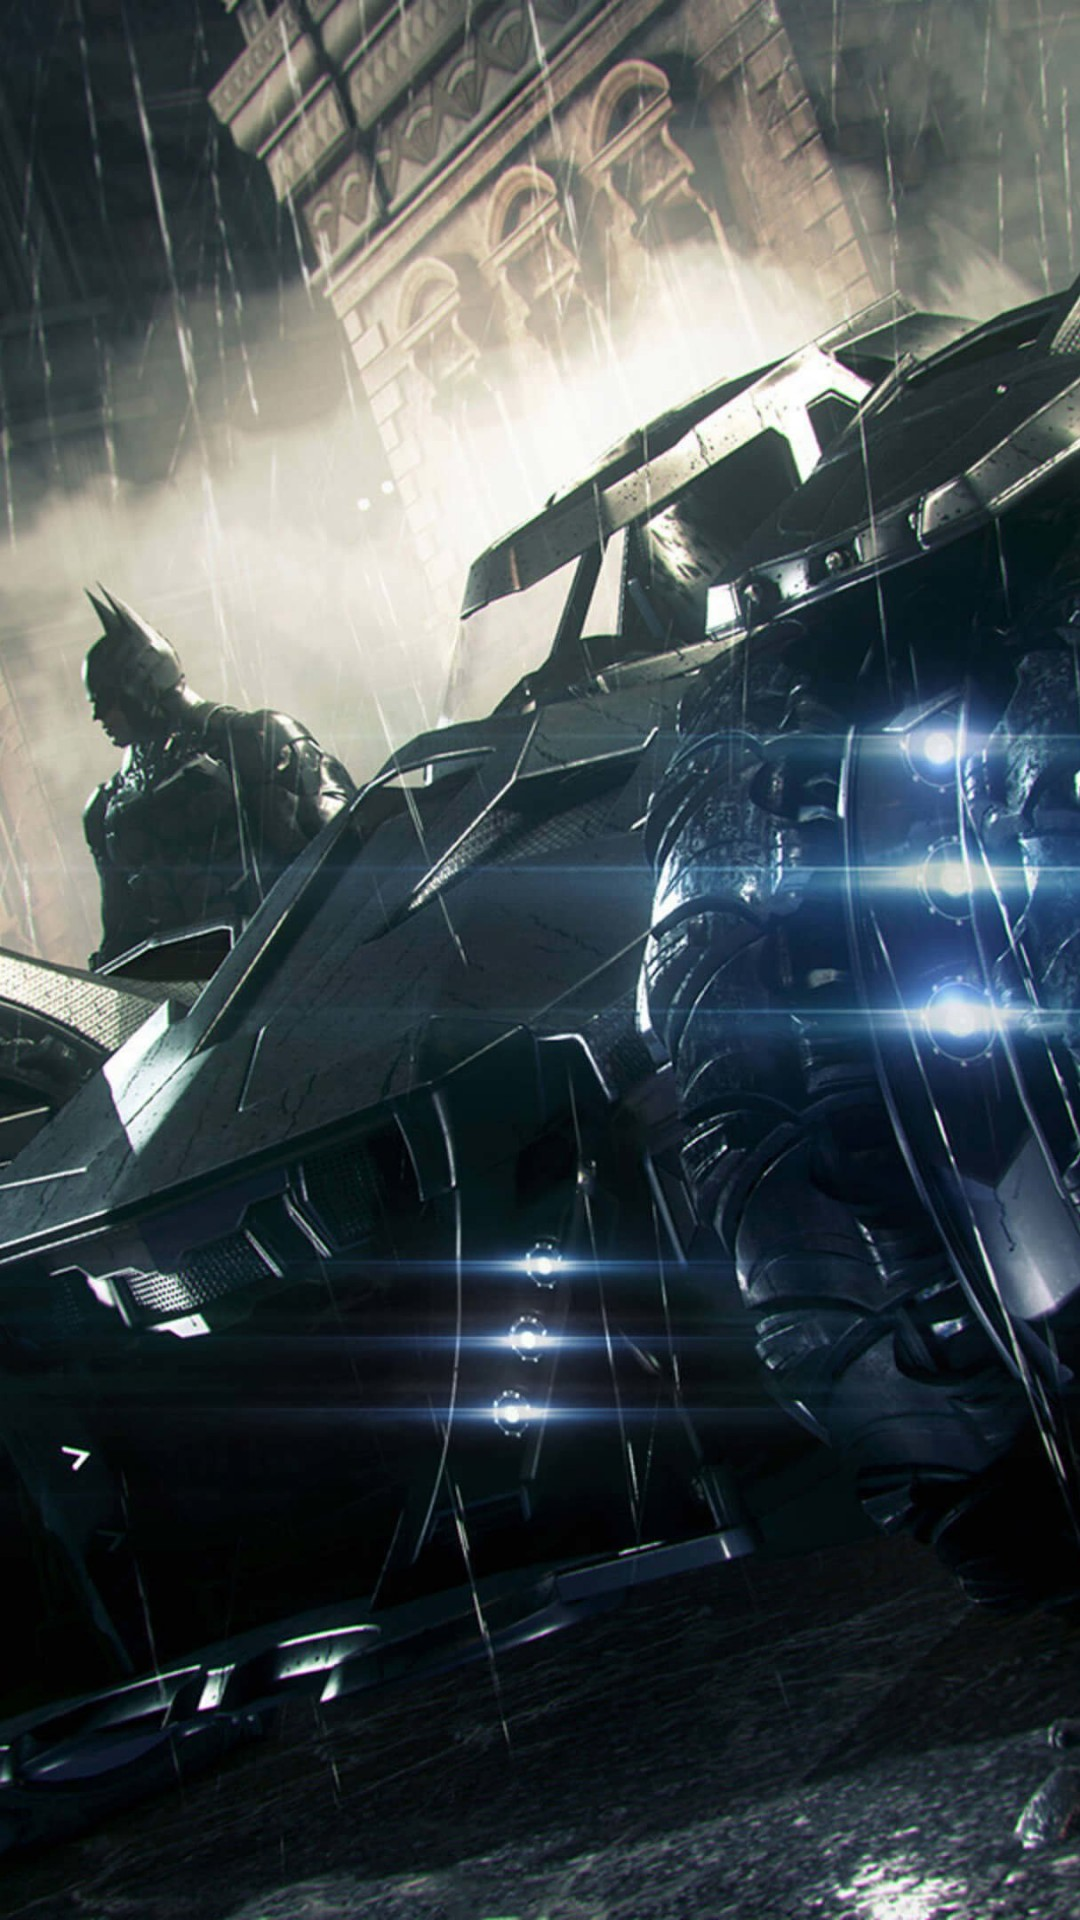 Batmobile - Batman Arkham Knight Wallpaper for SAMSUNG Galaxy S4